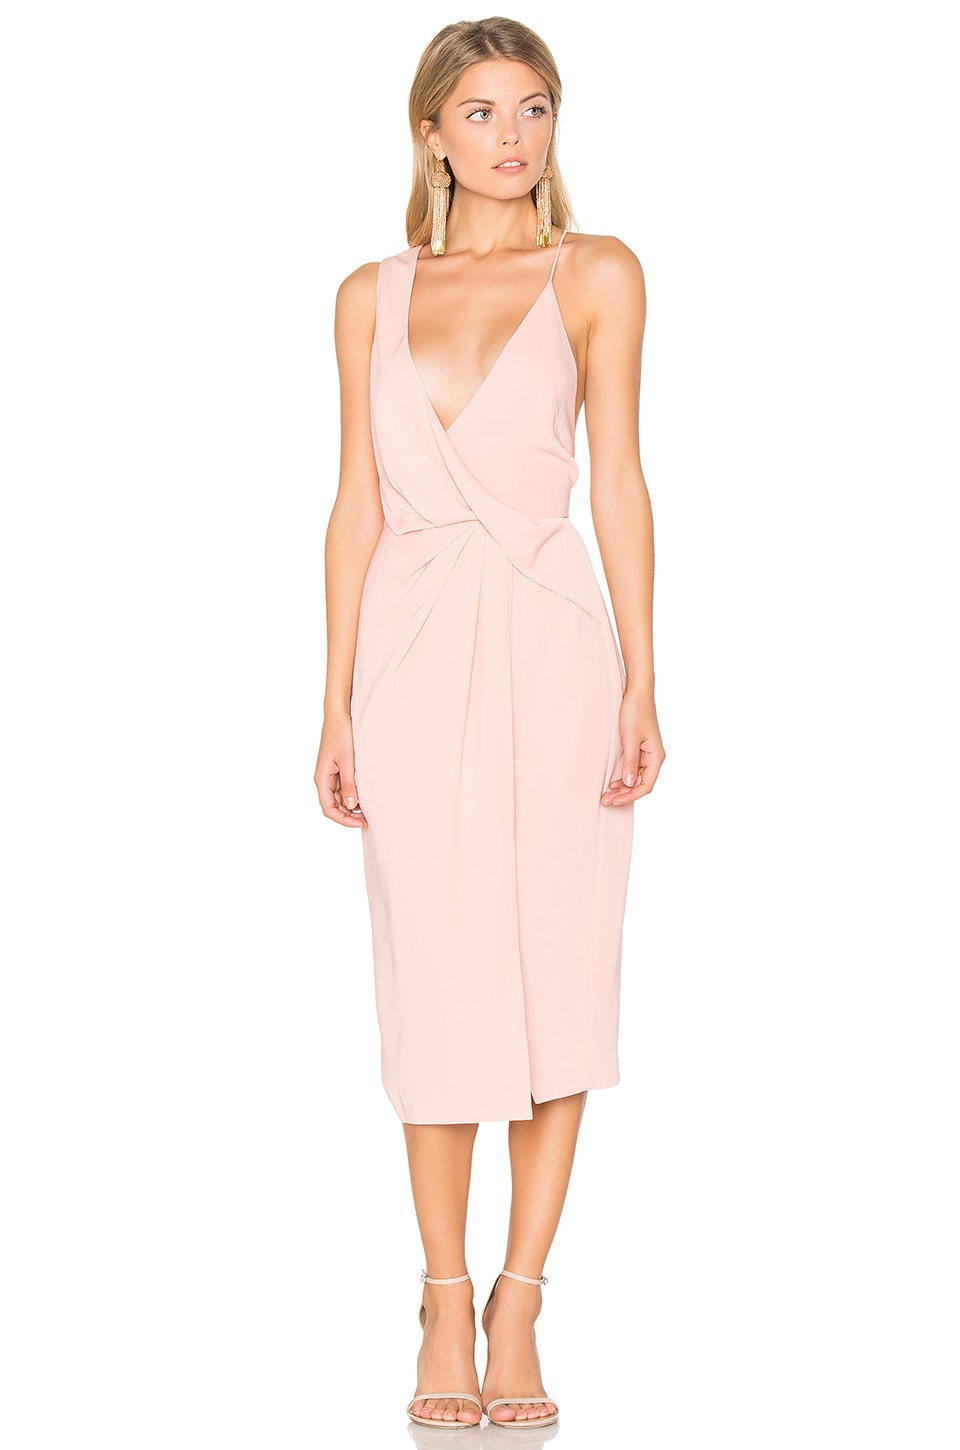 keepsake Without You Dress in Dusty Rose